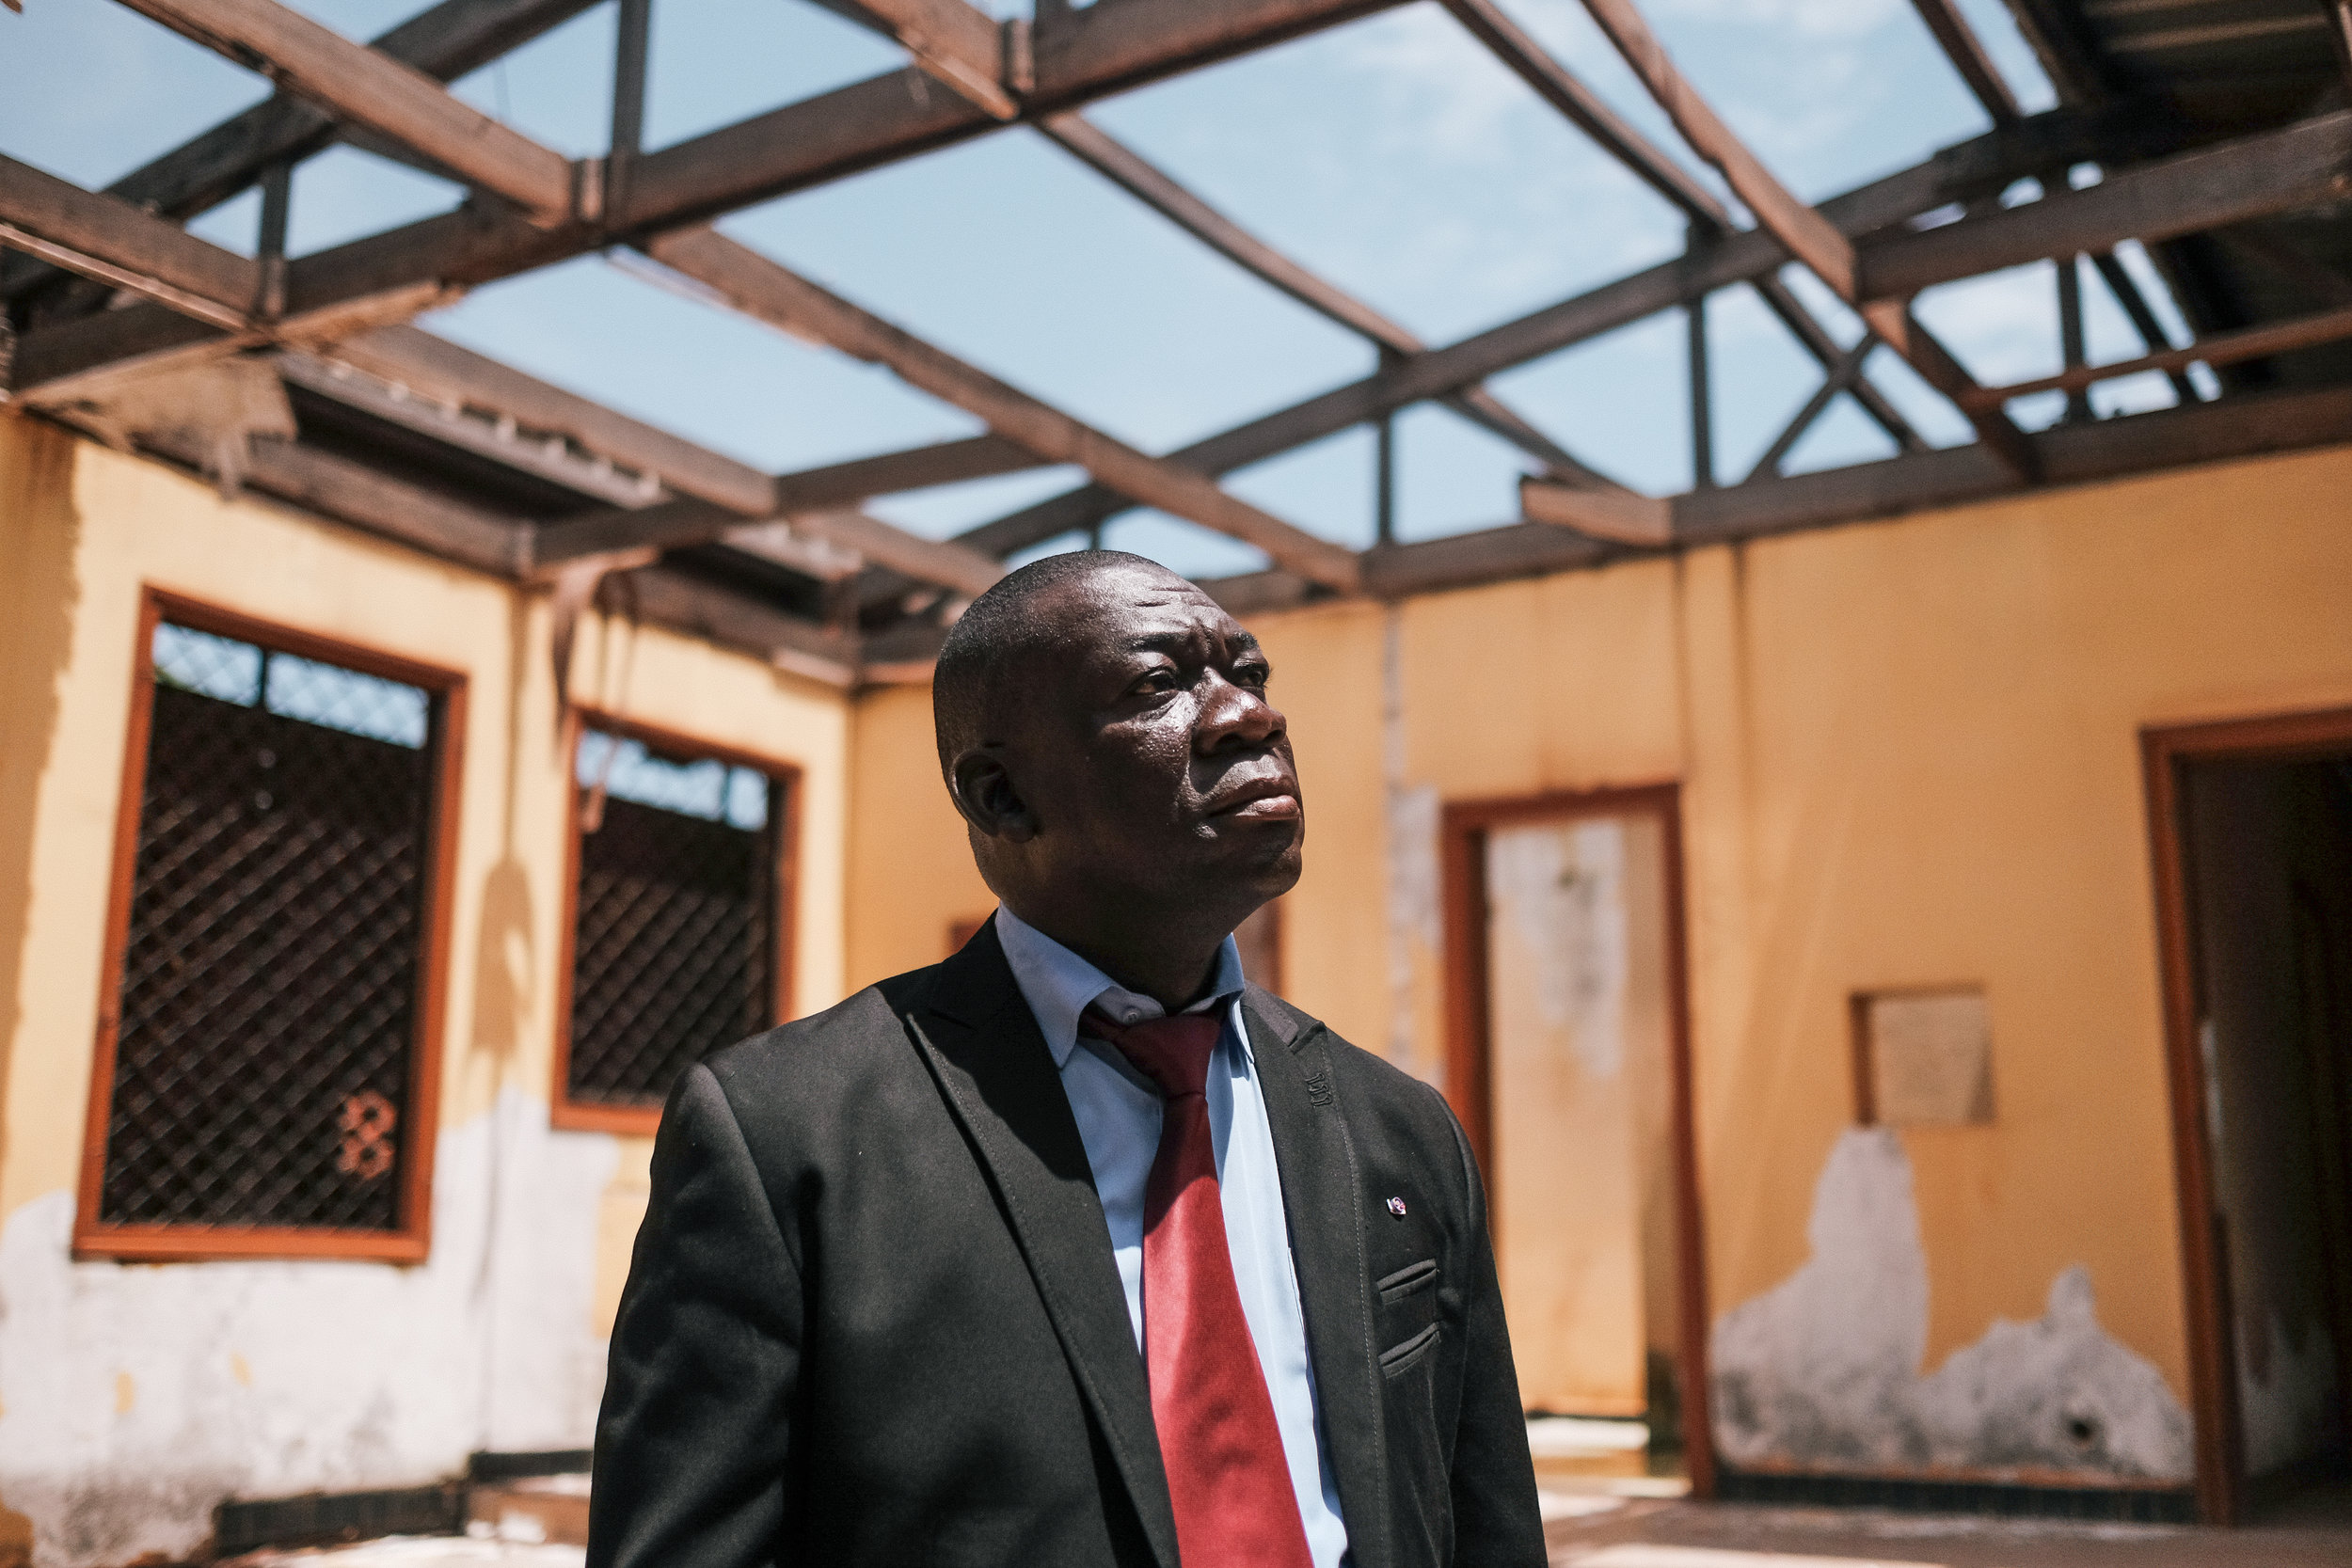 The teacher education venue at Central African Republic's INRAP (Institut national de recherche et d'animation pédagogiques) was heavily damaged during the armed conflict just like the nation's whole education sector. Director Samuel Feizounam checks the missing roof of the auditorium.